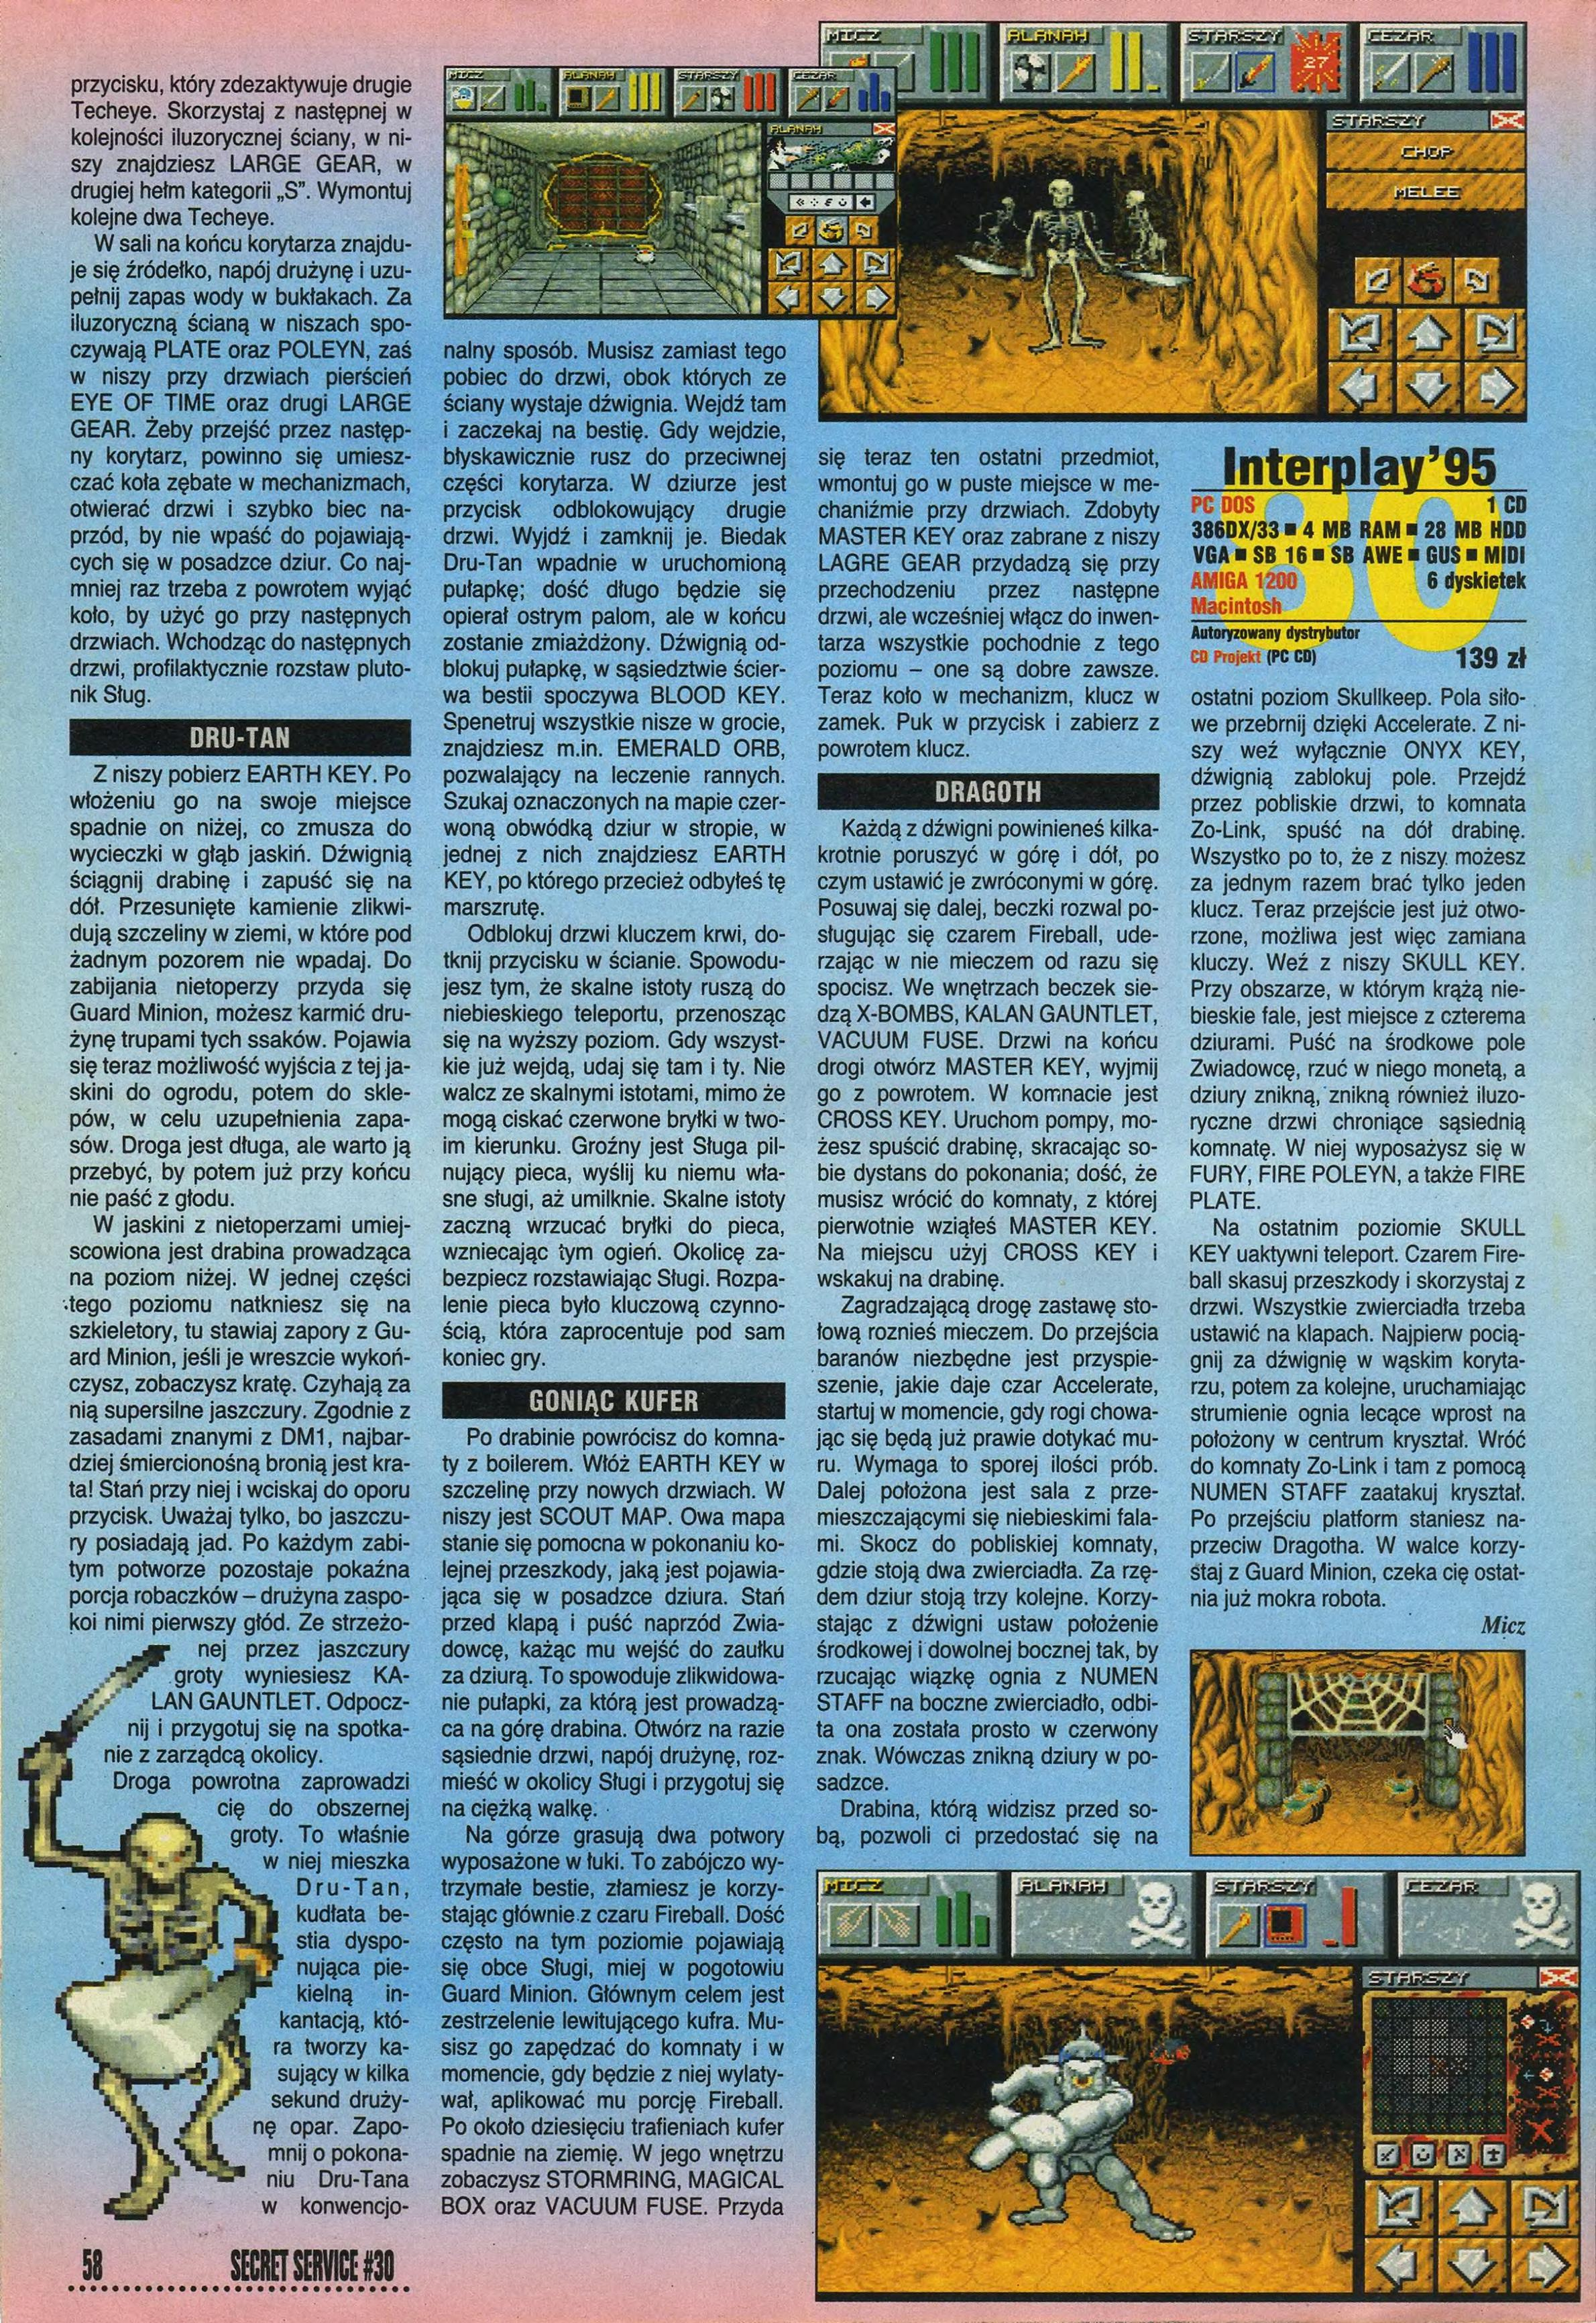 Dungeon Master II for PC-Amiga-Macintosh Review published in Polish magazine 'Secret Service', Issue #30 December 1995, Page 58